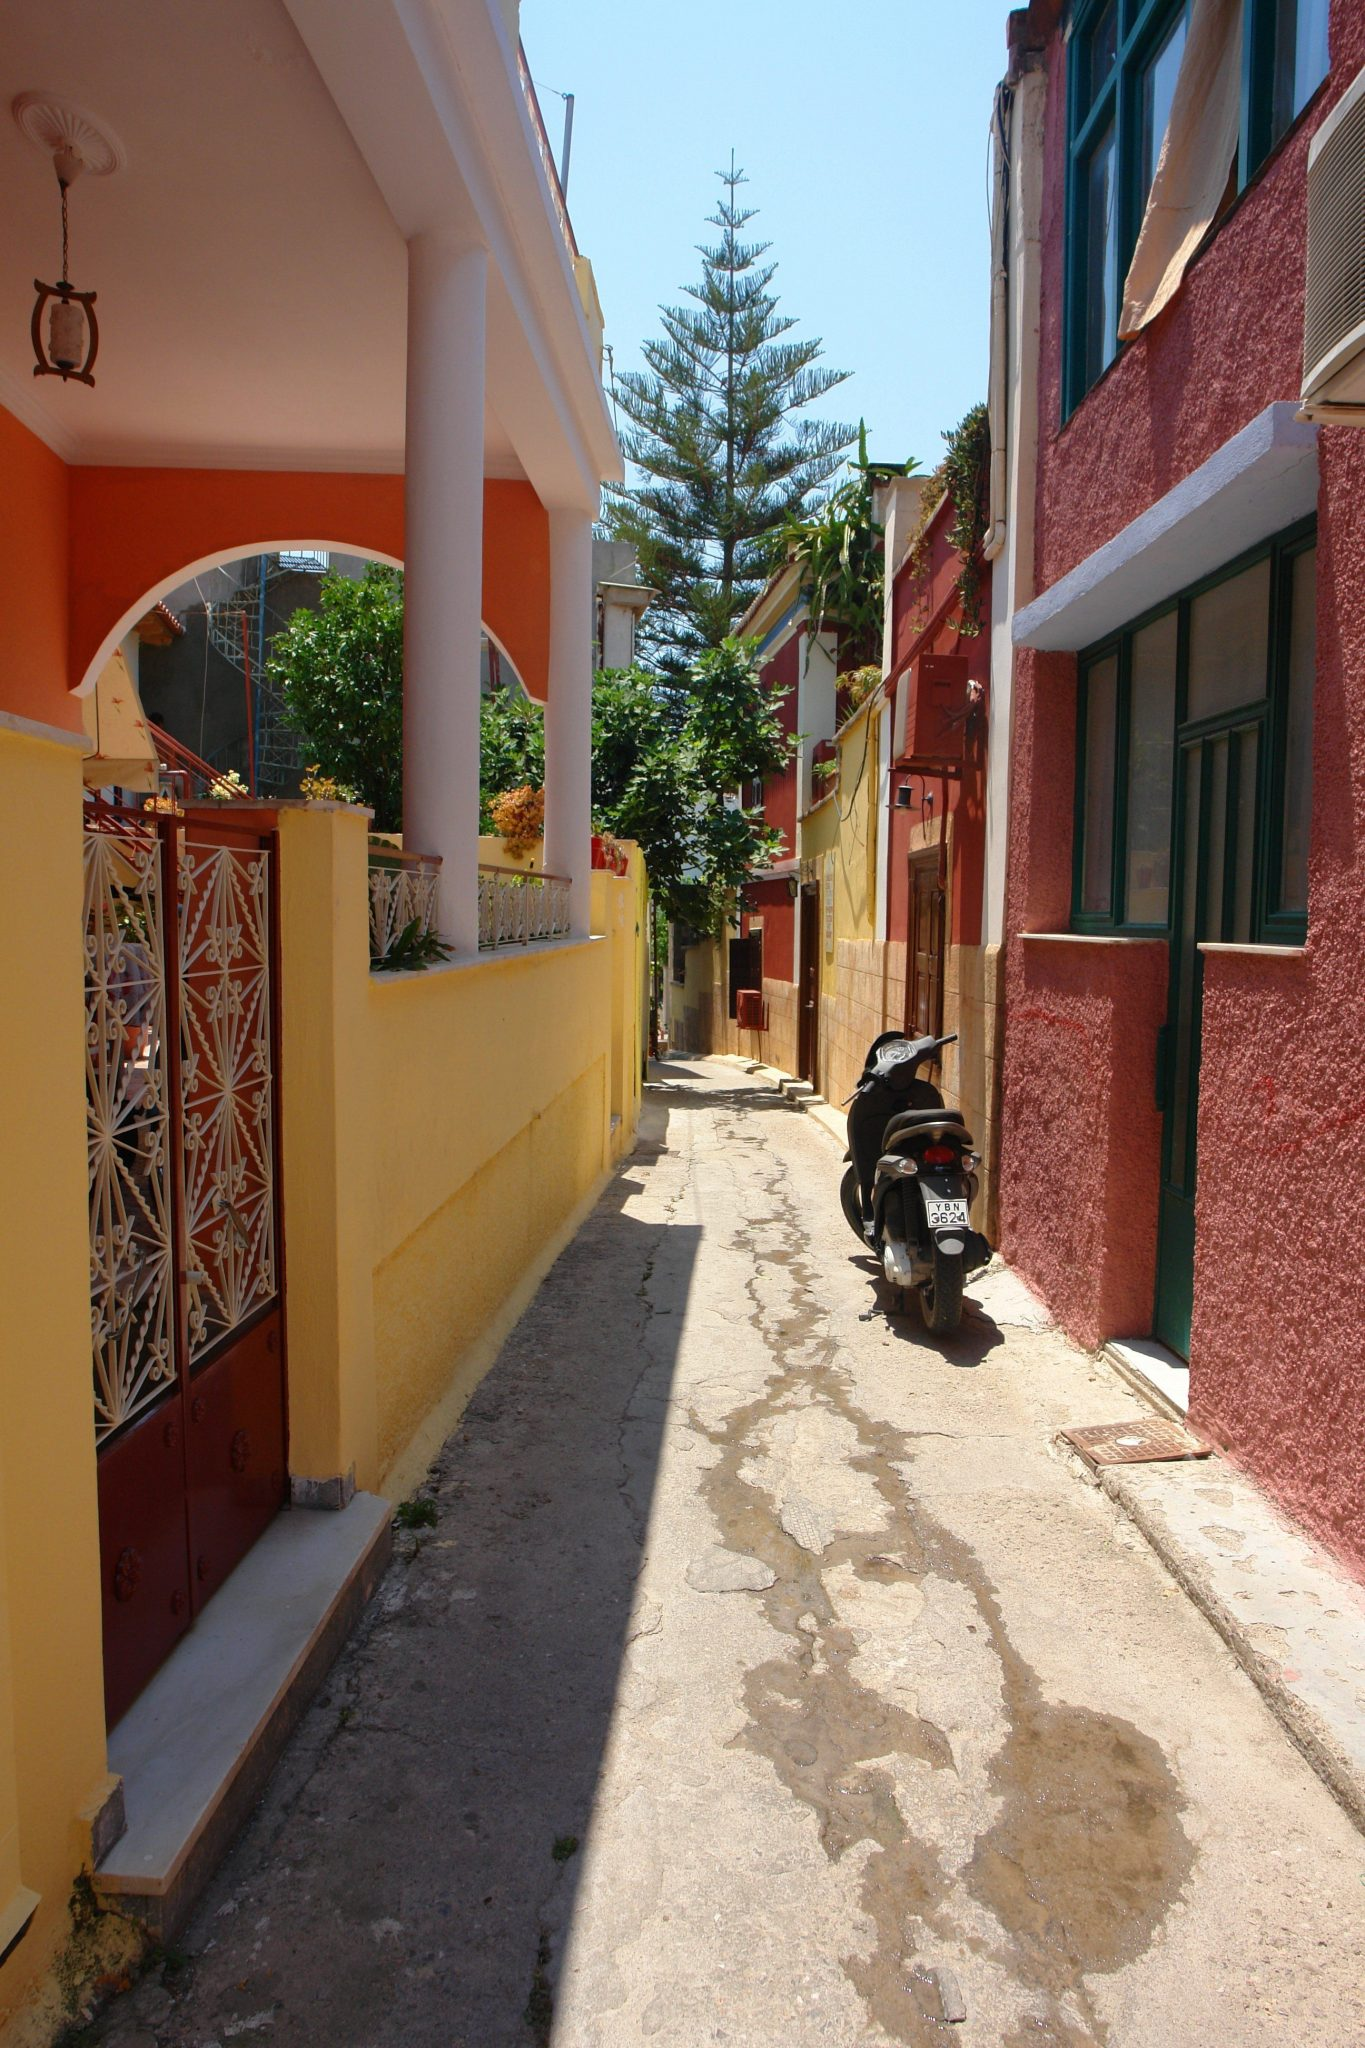 Picturesque alley in Aegina